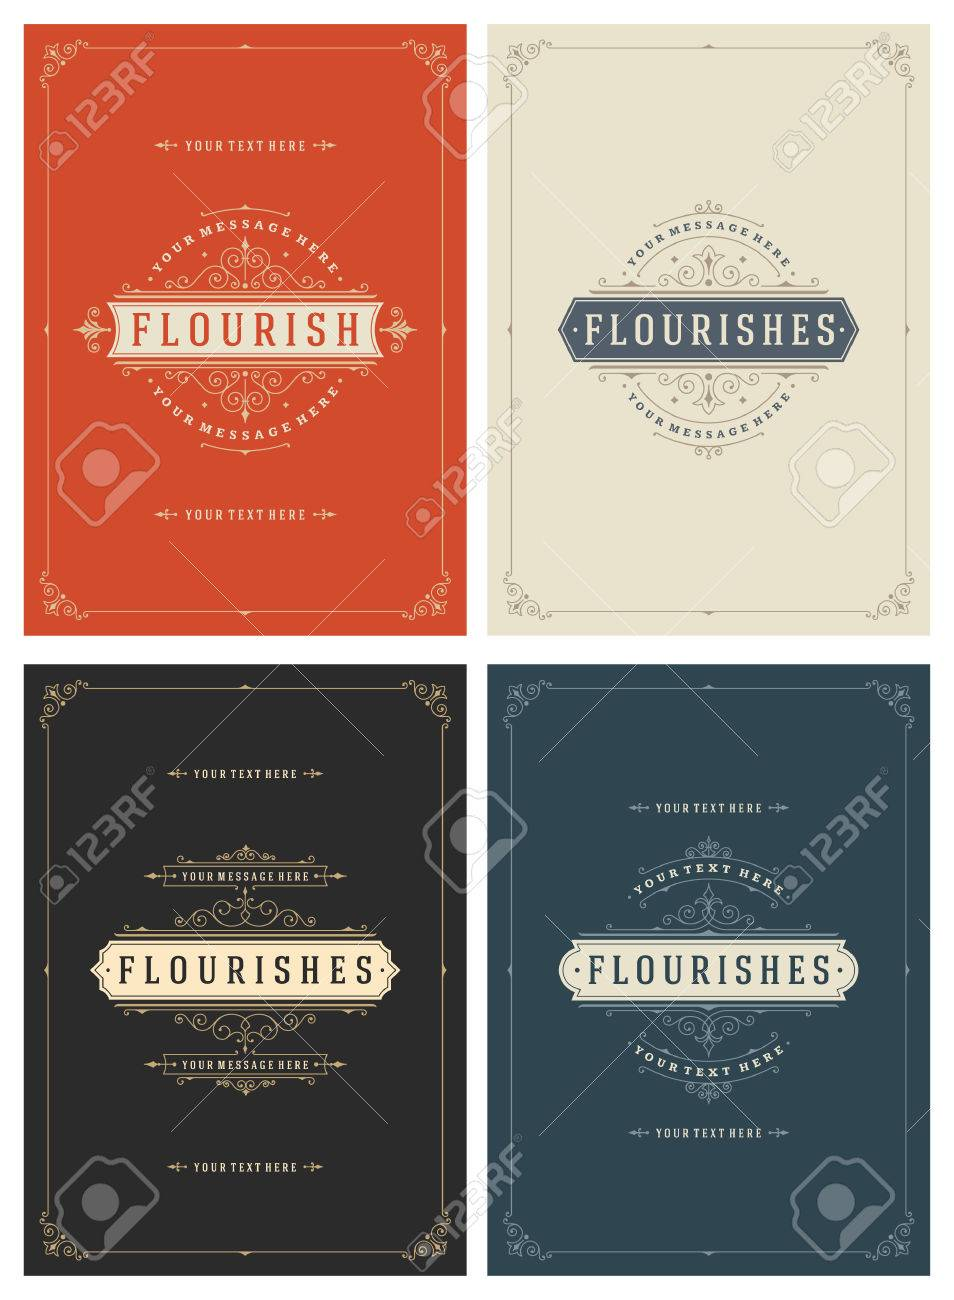 Vintage Ornament Greeting Cards Vector Templates Set. Retro Luxury Invitations, Royal Certificate, Book Covers. Flourishes frame. Vintage Background, Vintage Frame, Vintage Ornament, Ornaments Vector. - 51129506